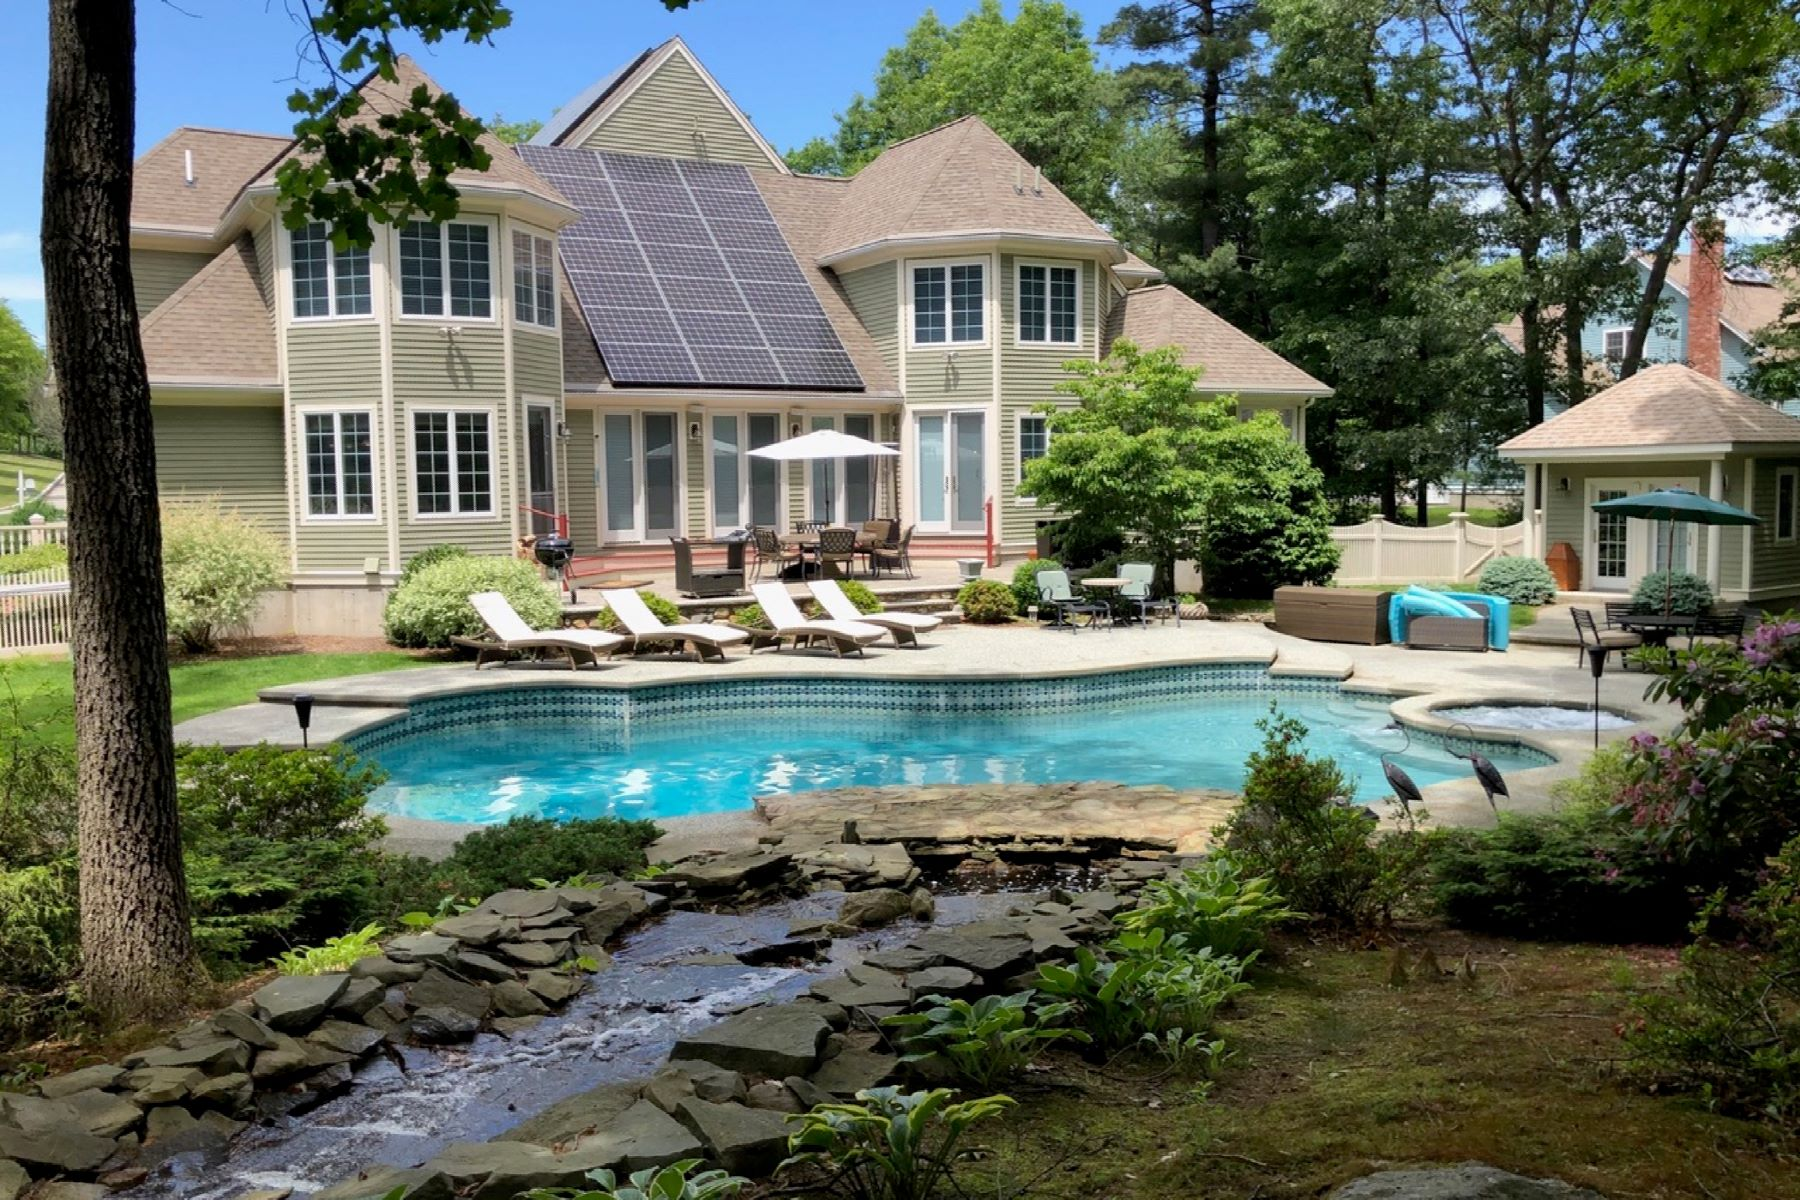 Single Family Homes for Active at 39 Robinson Drive, Bedford 39 Robinson Dr Bedford, Massachusetts 01730 United States